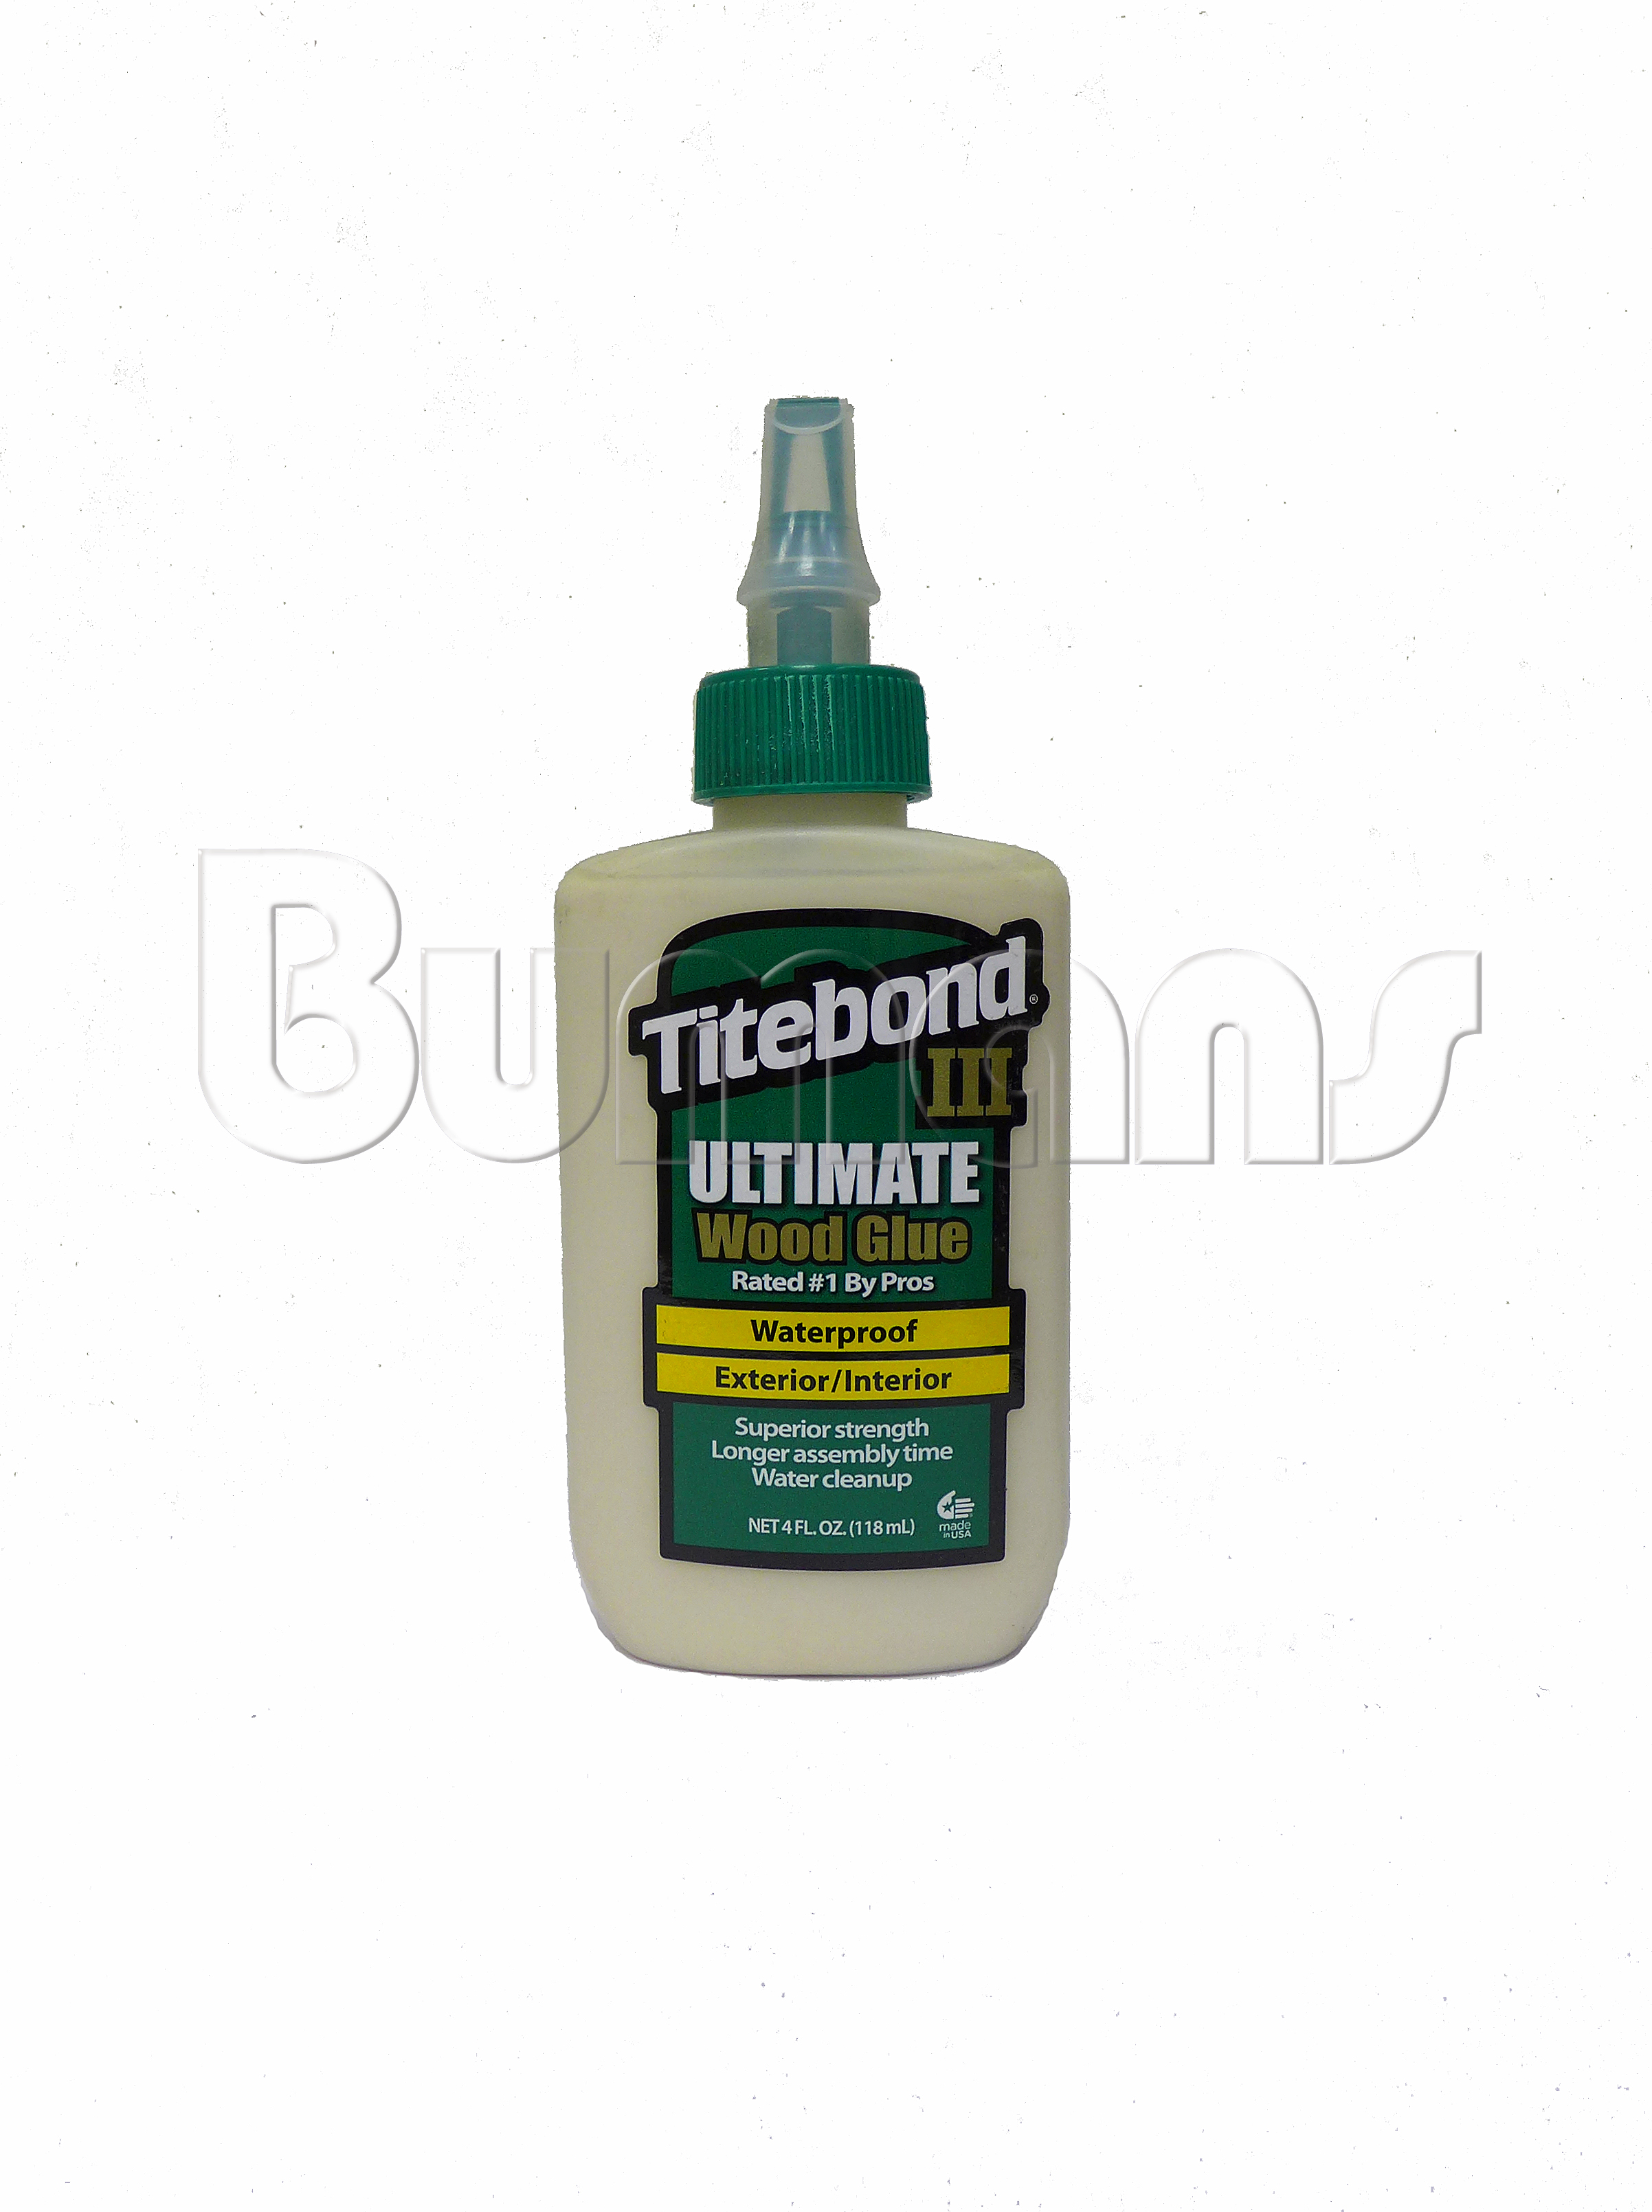 Titebond III Ultimate Wood Glue 0,118 л в Буманс